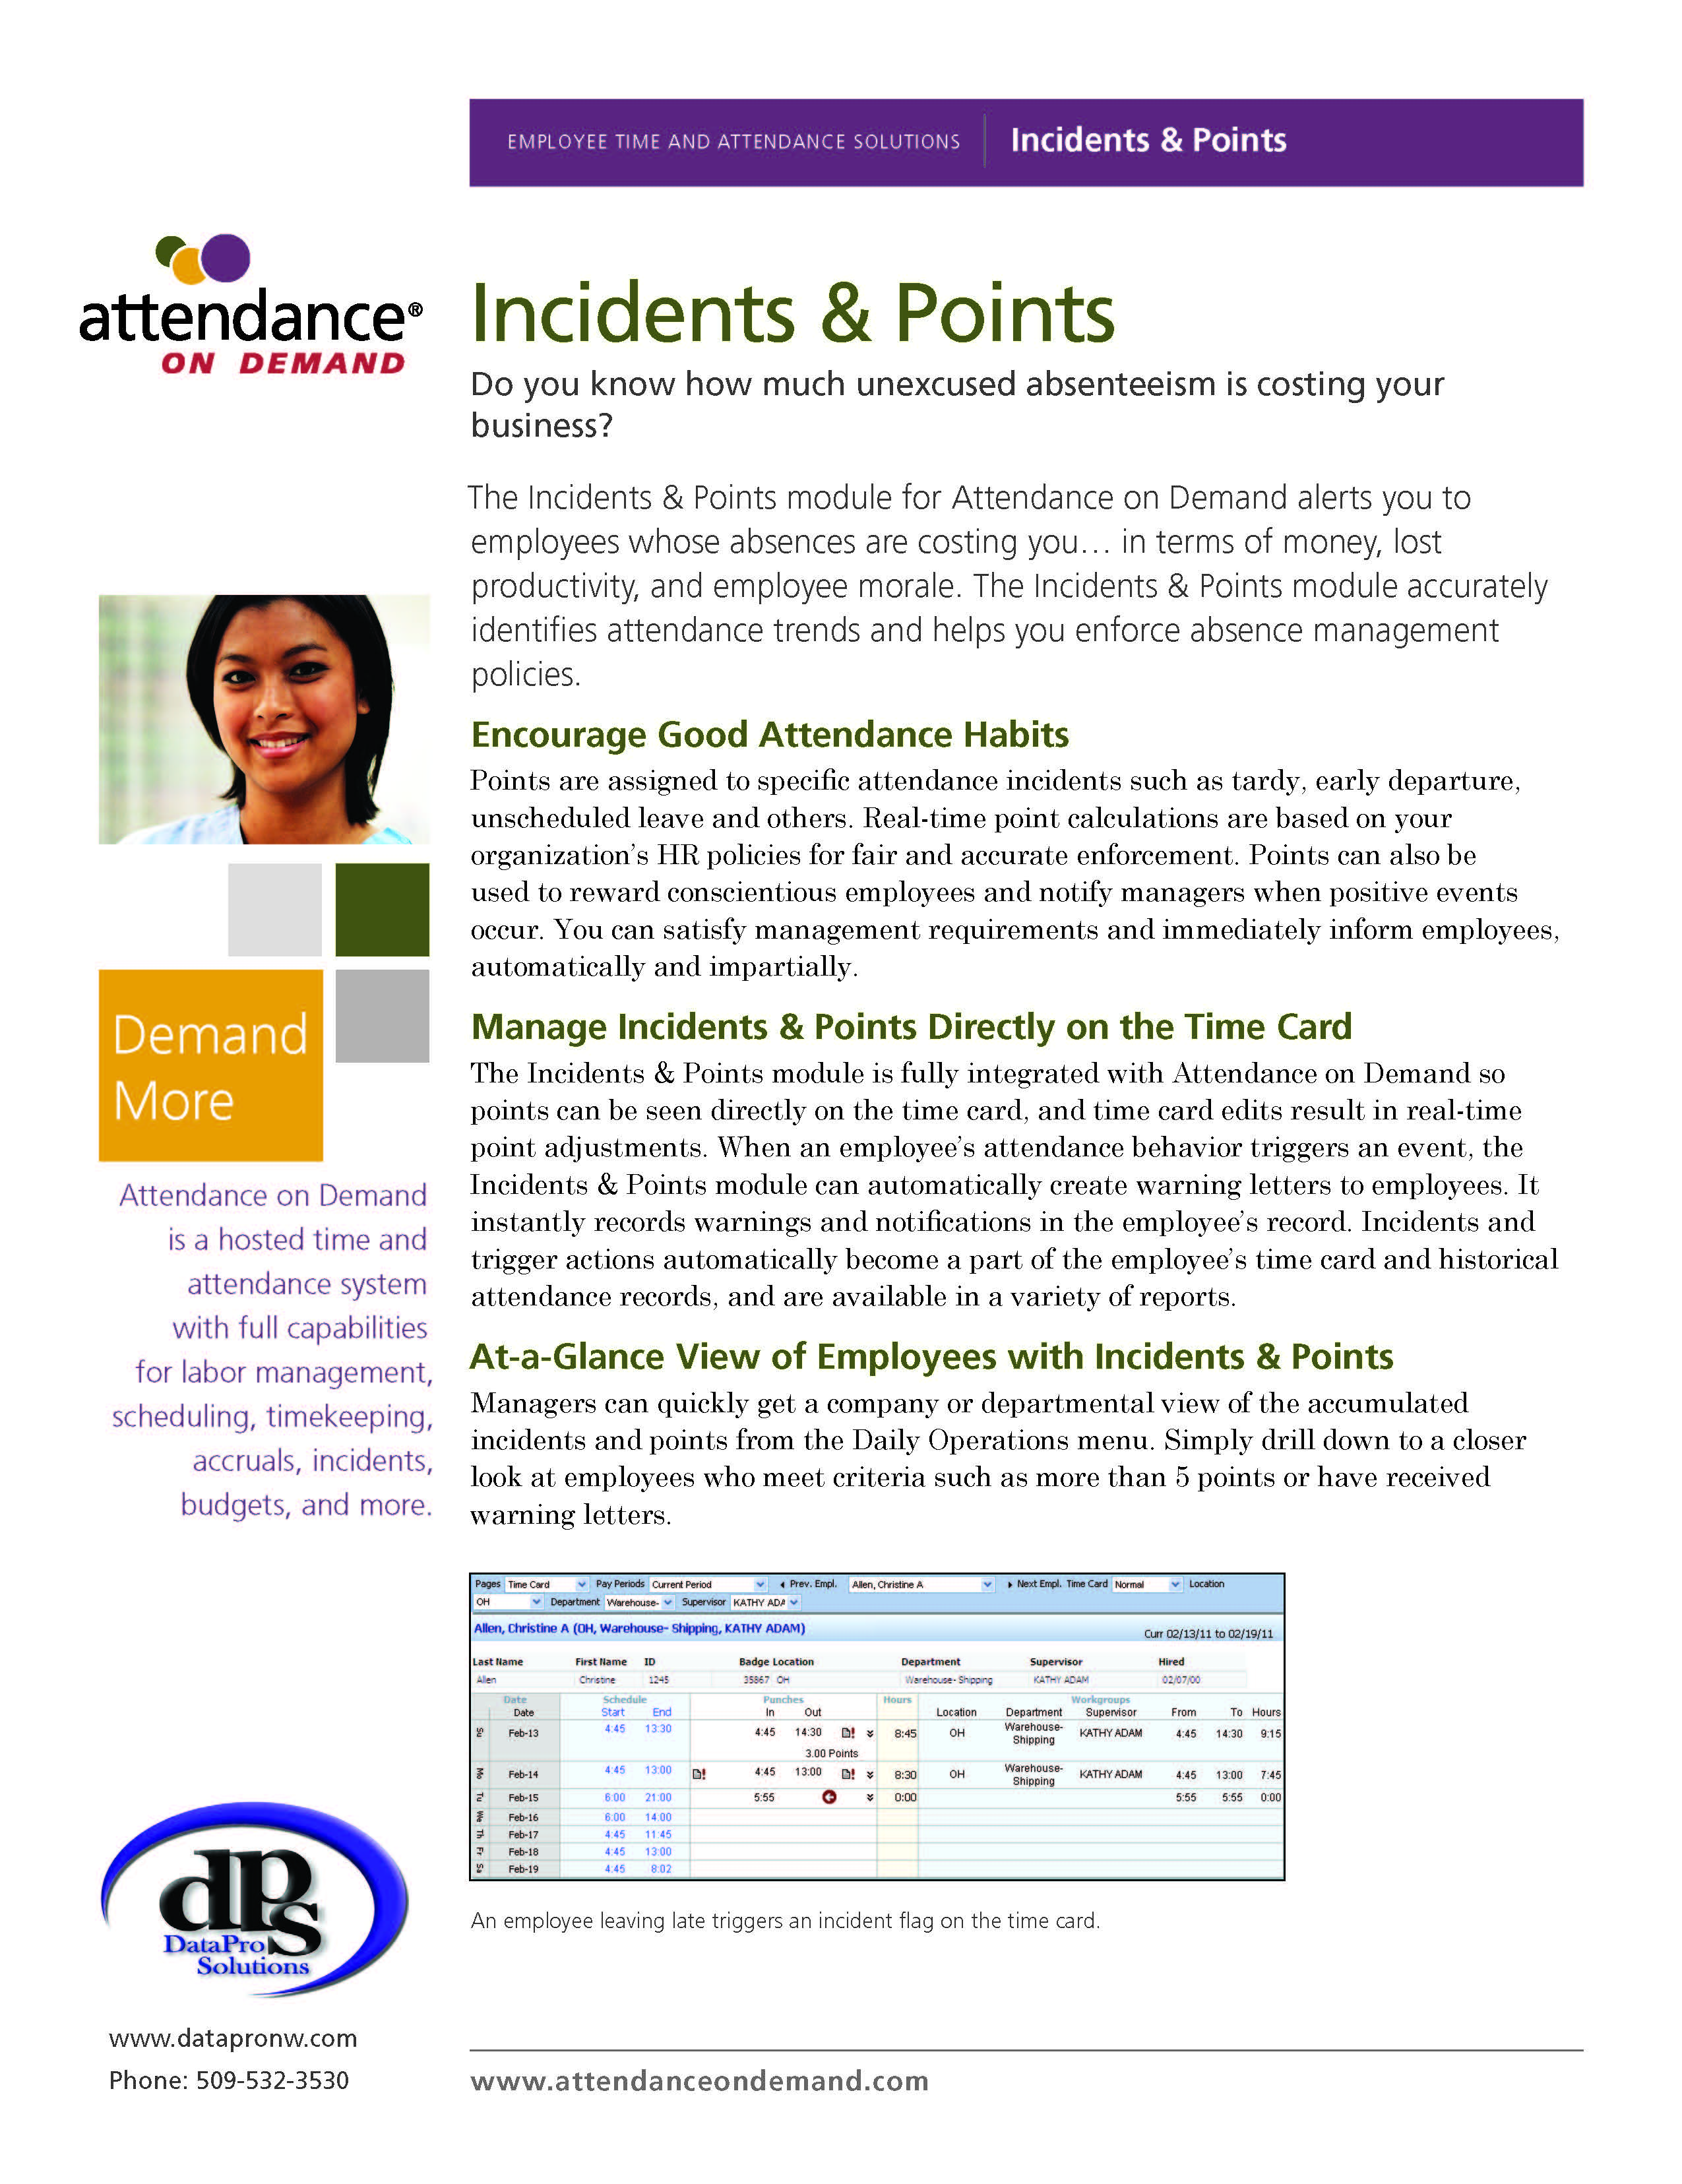 time and attendance machine and software systems data pro solutions